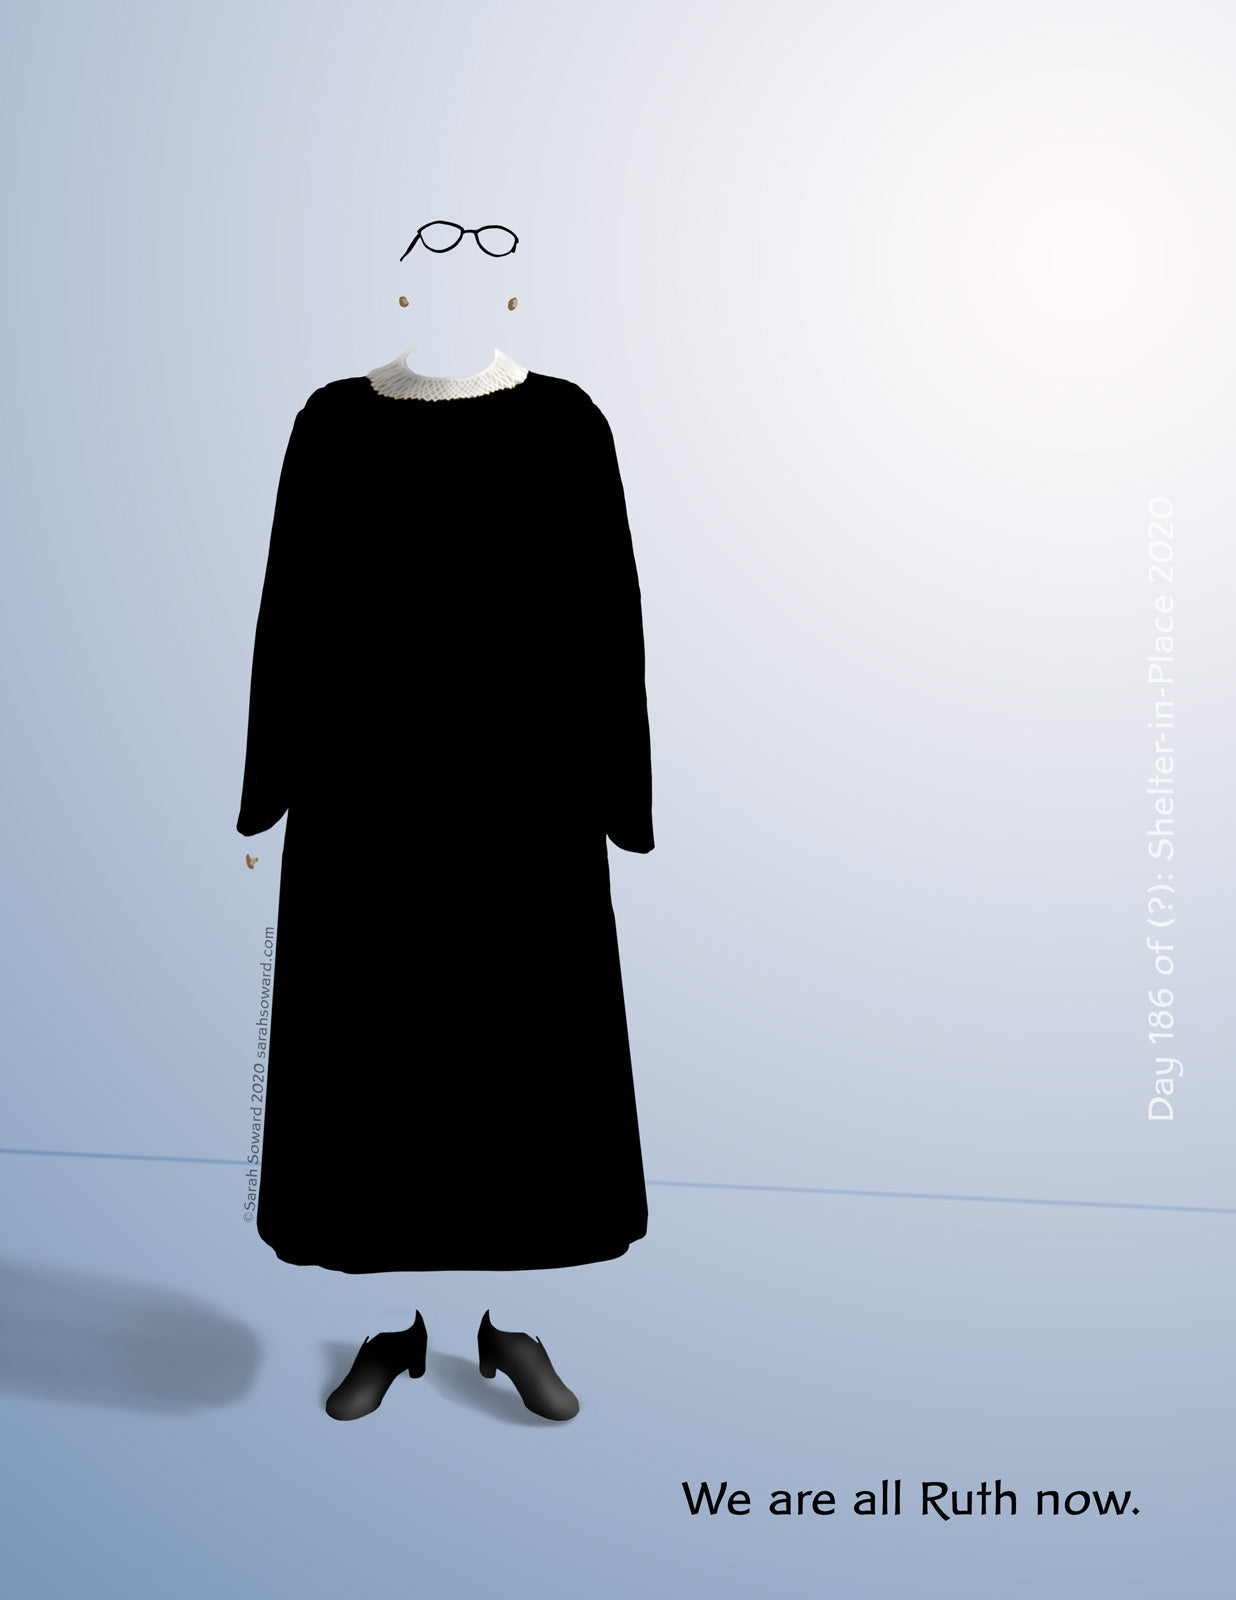 The image depicts Ruth Bader Ginsberg's shoes, glasses, jewelry, judicial robe, and her most often worn collar. The physical form of RBG is not present. She died of cancer a few days before this was drawn. The purpose of removing her physical form from the image is to honor her passing and to allow each of us to envision ourselves continuing the work she at which she excelled. The text on the image reads  We are all Ruth now.